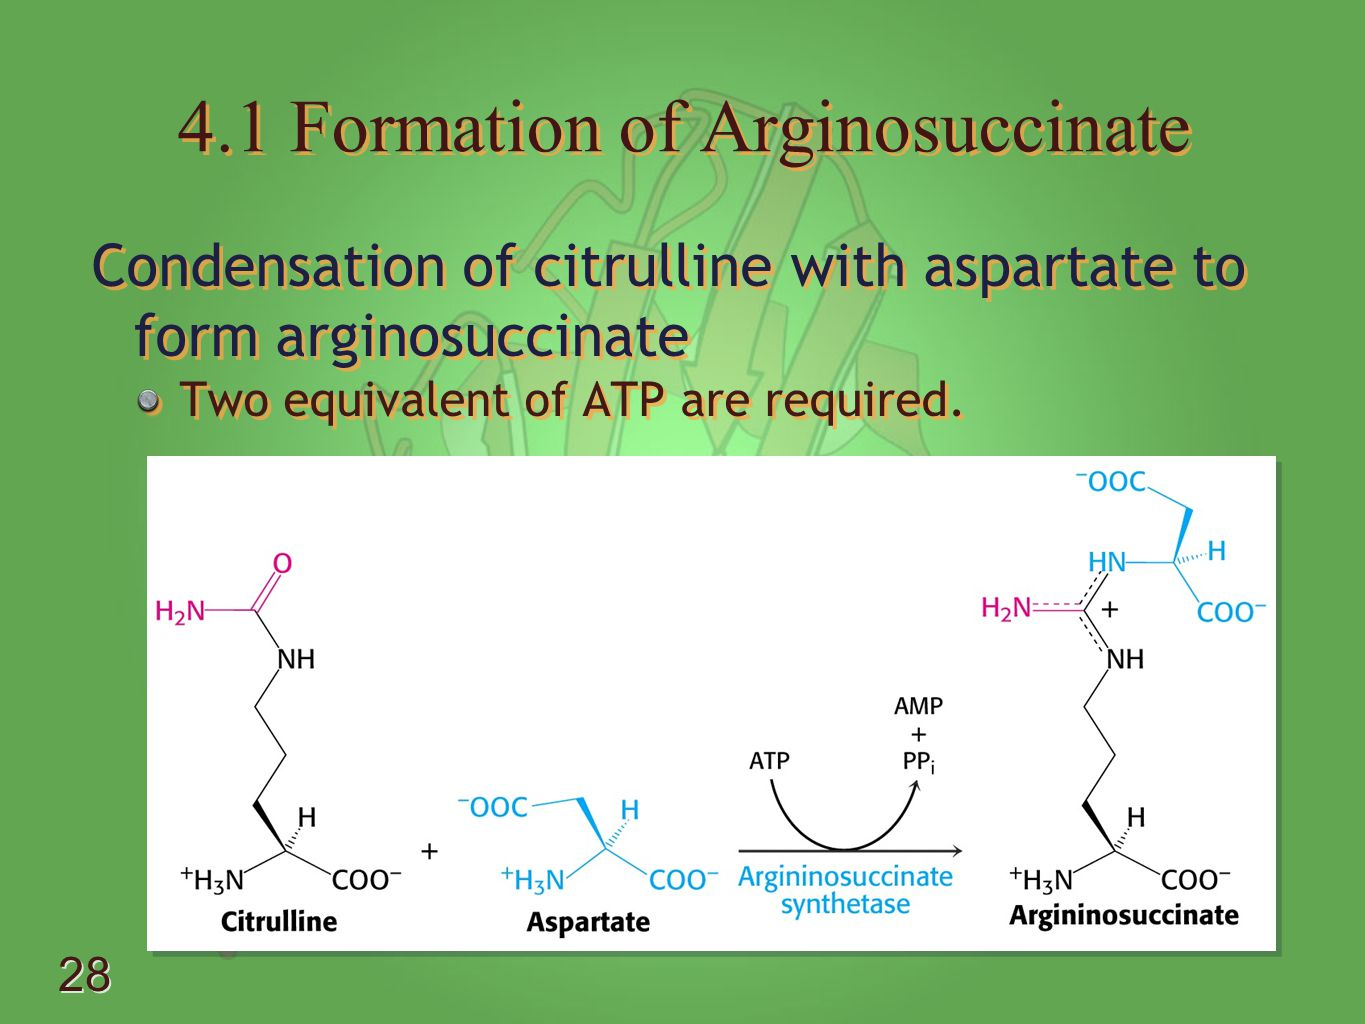 4.1 Formation of Arginosuccinate